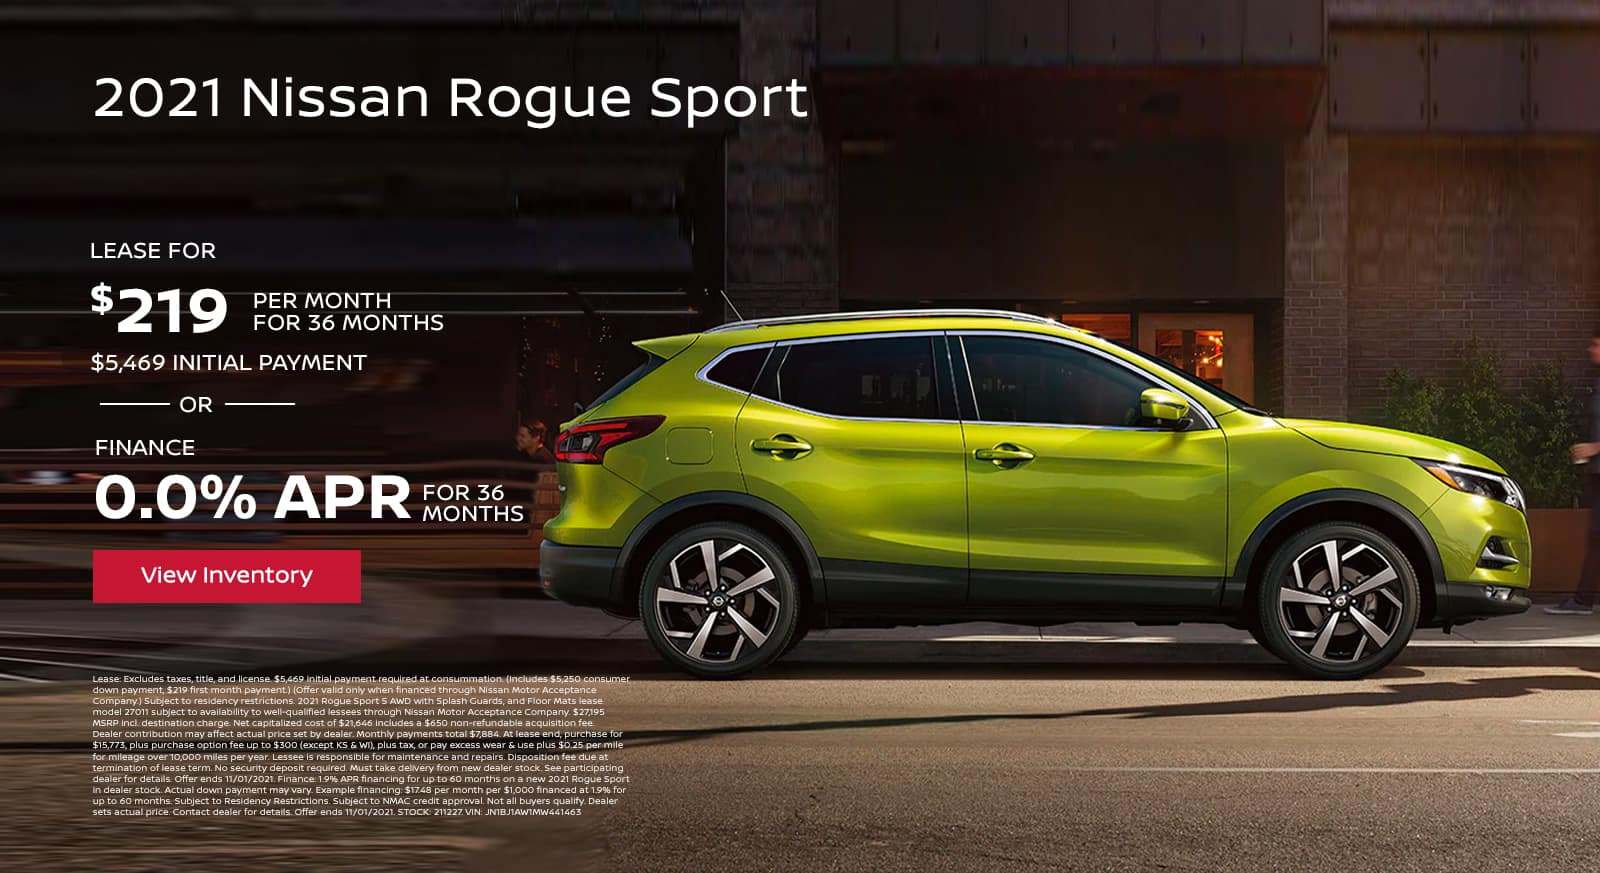 2021 Nissan Rogue Sport $219 Per Month Lease | 36 Months | $5,469 Initial Payment